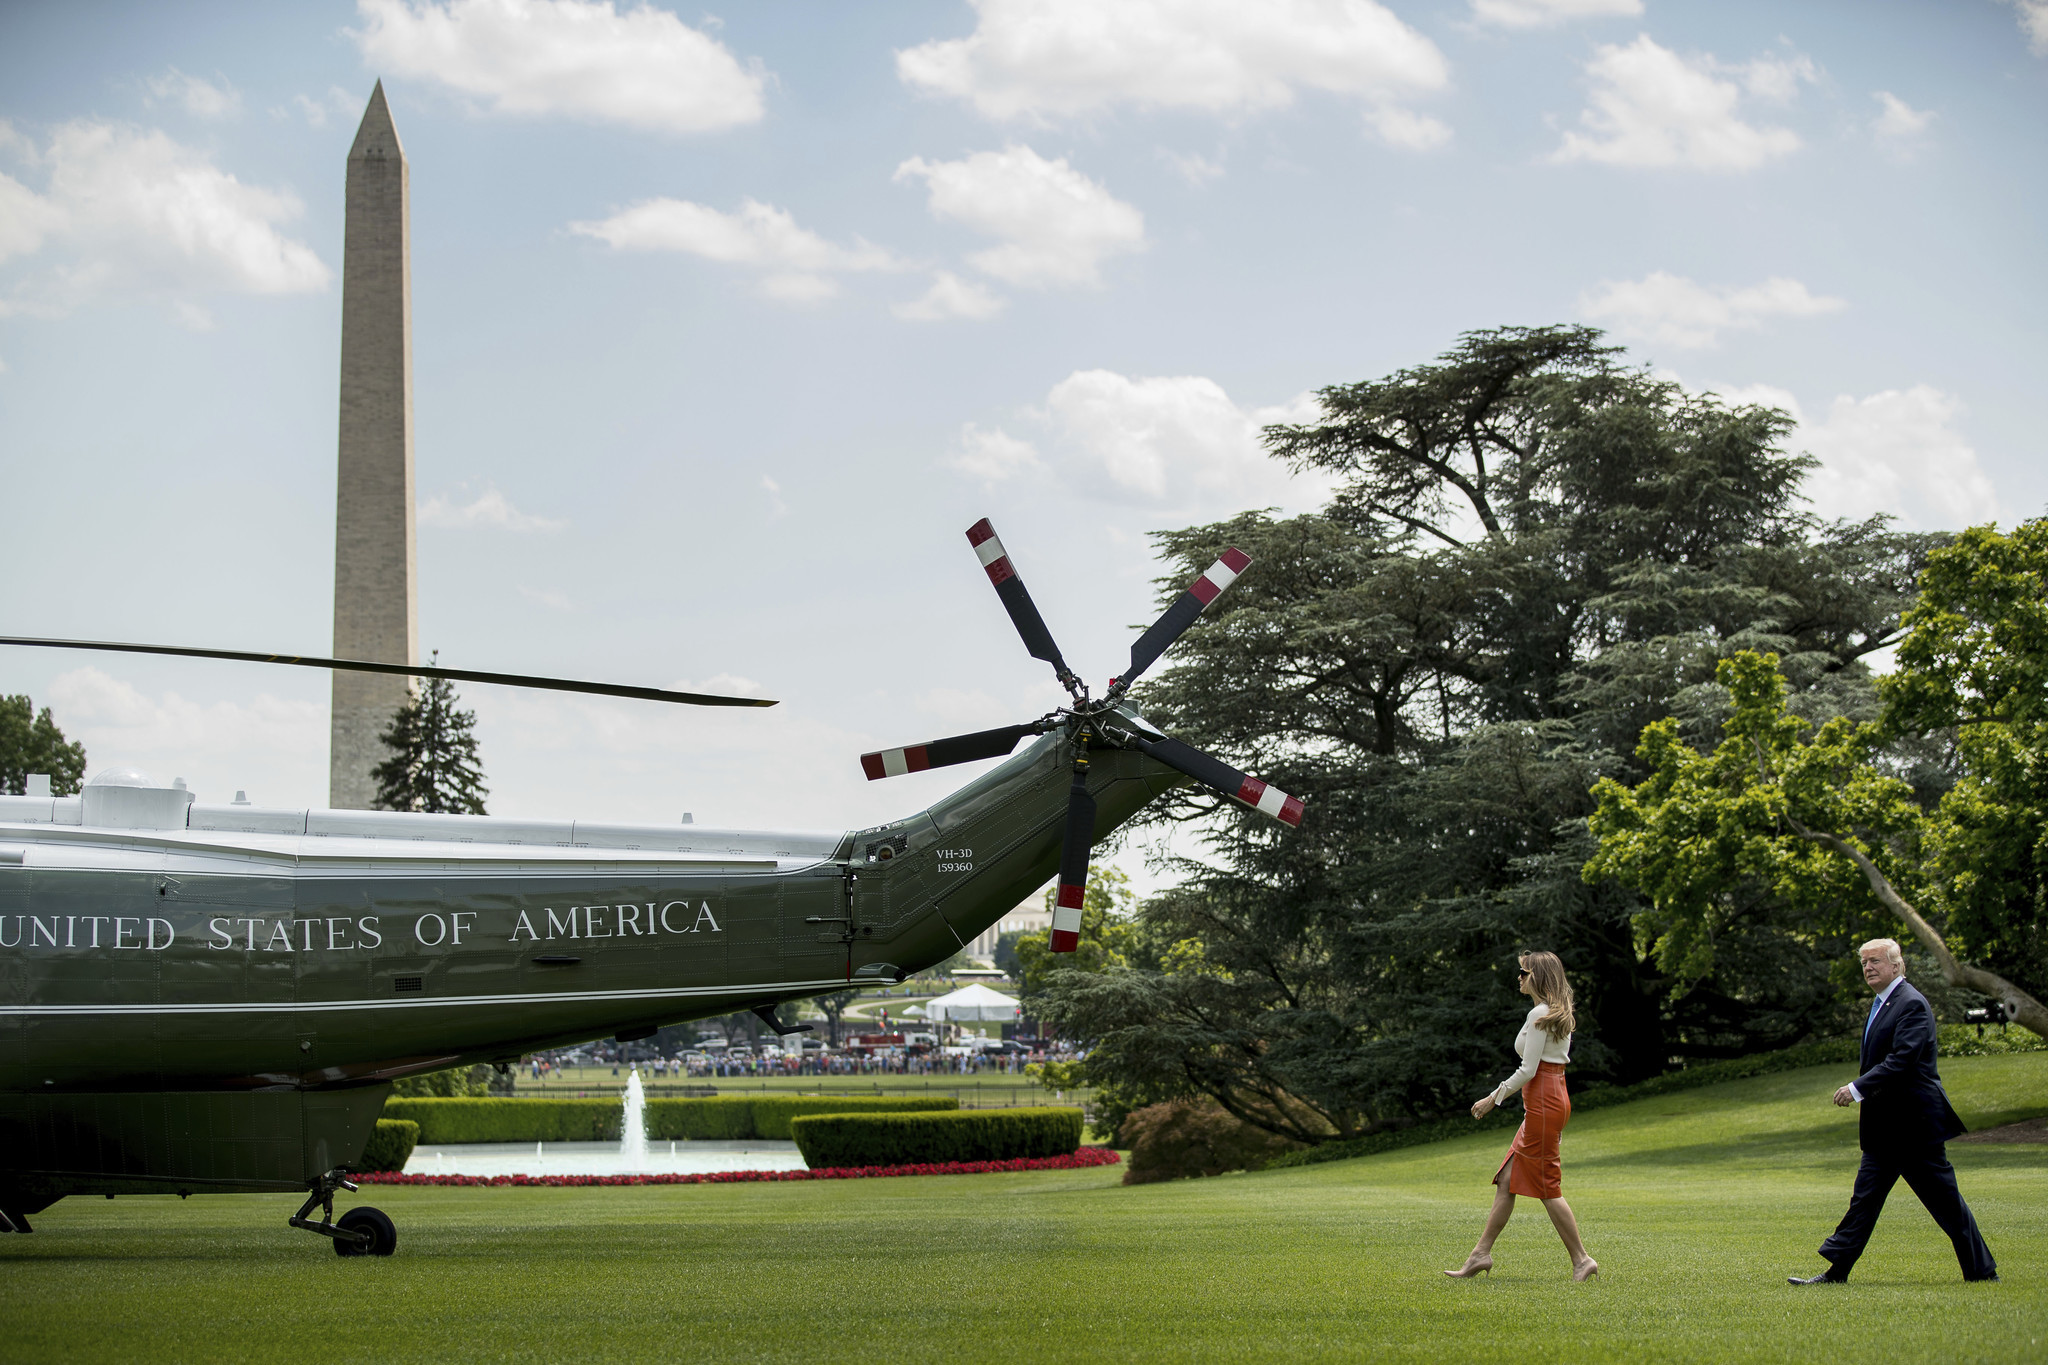 President Trump and First Lady Melania Trump walk across the South Lawn of the White House on Friday, May 19, before boarding Marine One for a short trip to Joint Base Andrews in Maryland. (Andrew Harnik / Associated Press)